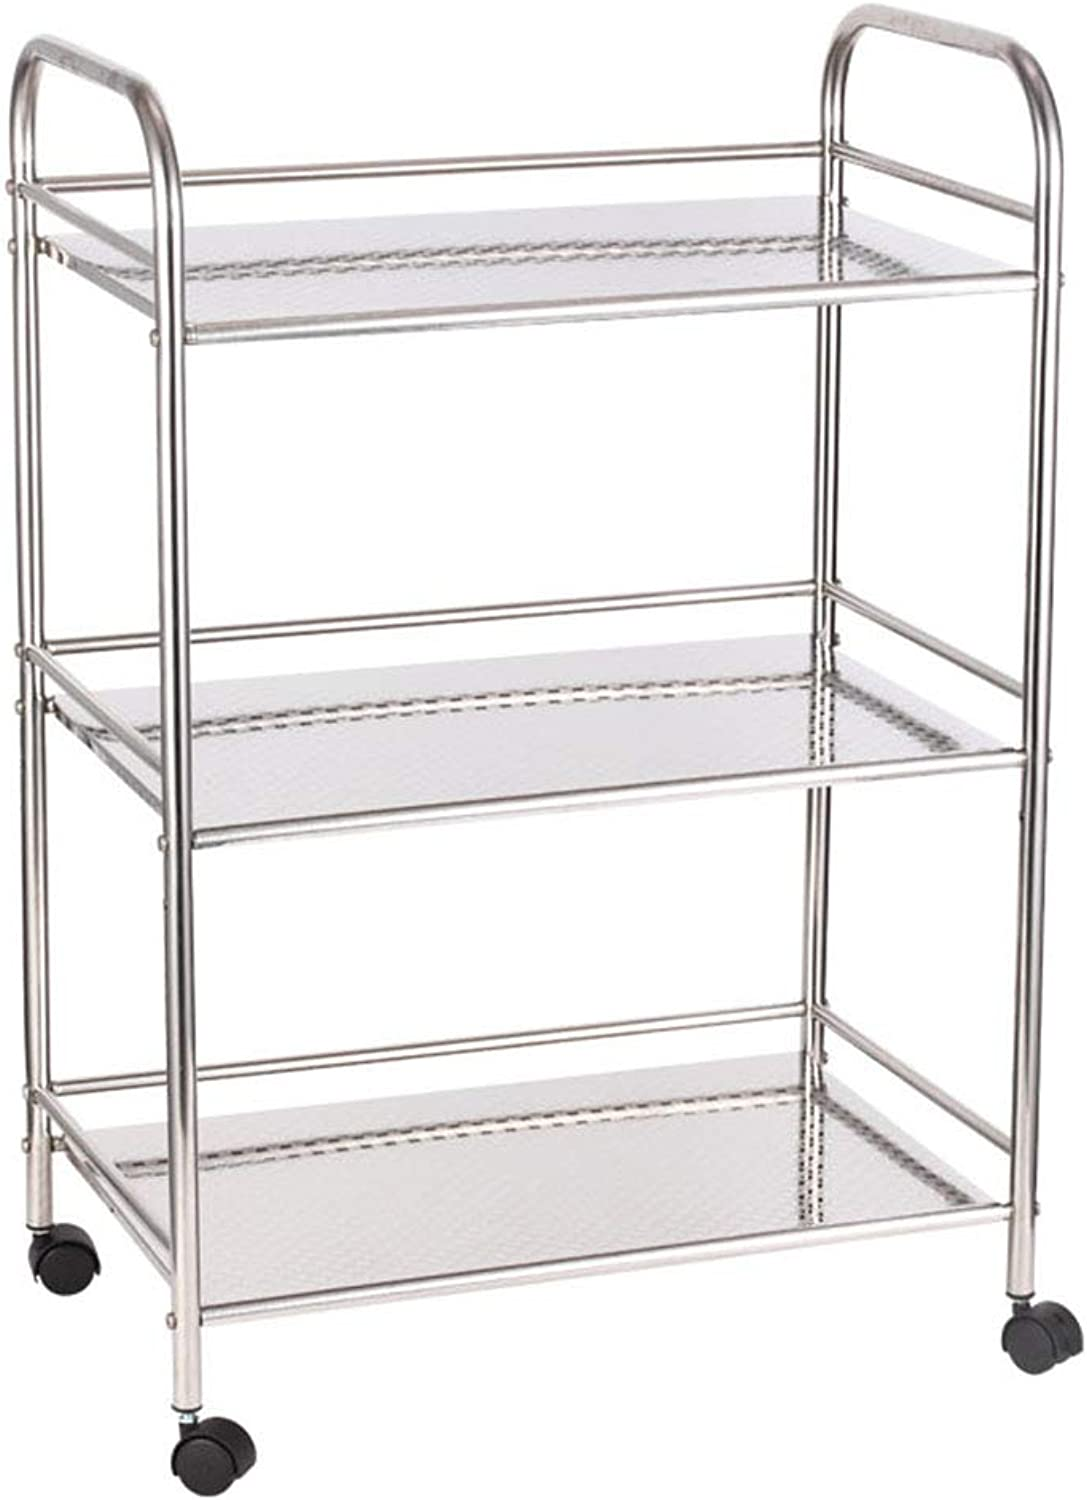 3-Tier Rolling Stainless Steel Multifunction Utility Trolley Kitchen Island Dining Cart Rolling Microwave Storage Shelves Organizer, for Commercial Hotel Restaurant Dining Area